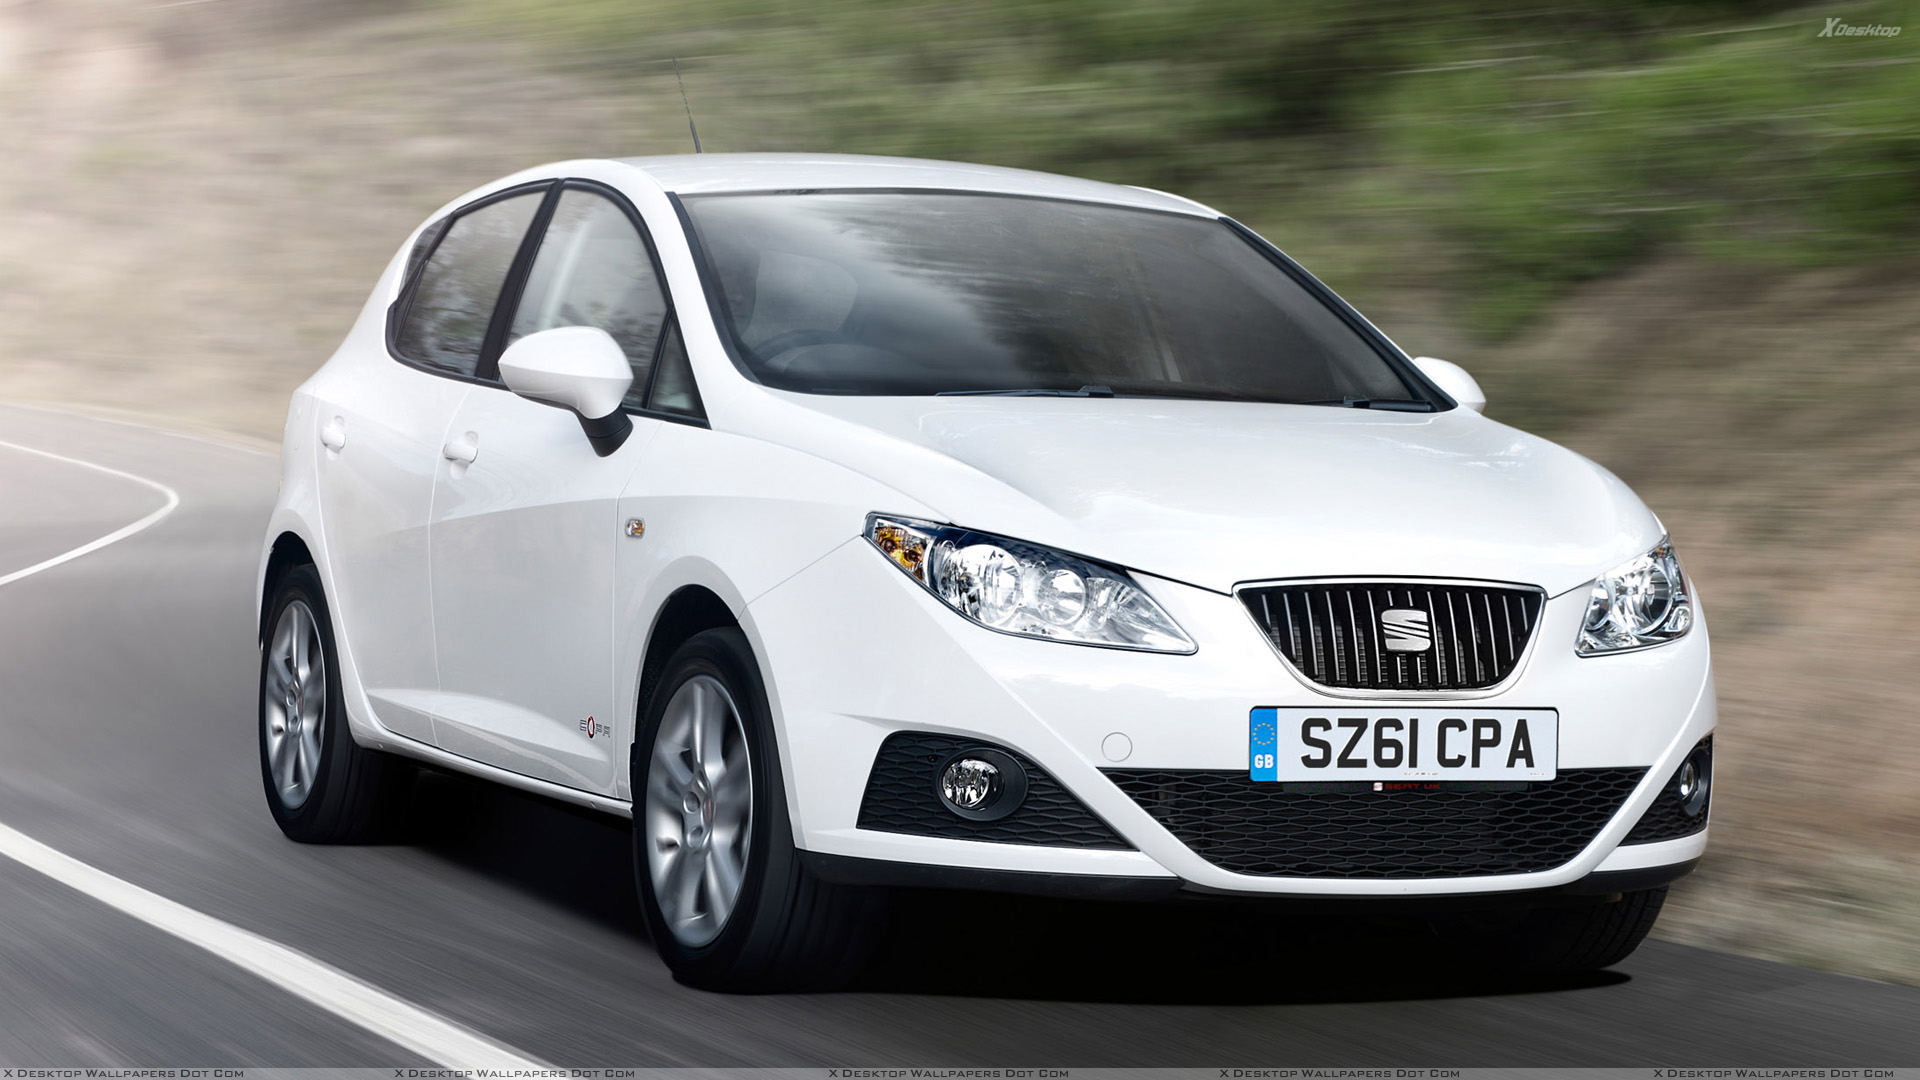 running 2012 seat ibiza 5 door se copa in white front pose wallpaper. Black Bedroom Furniture Sets. Home Design Ideas